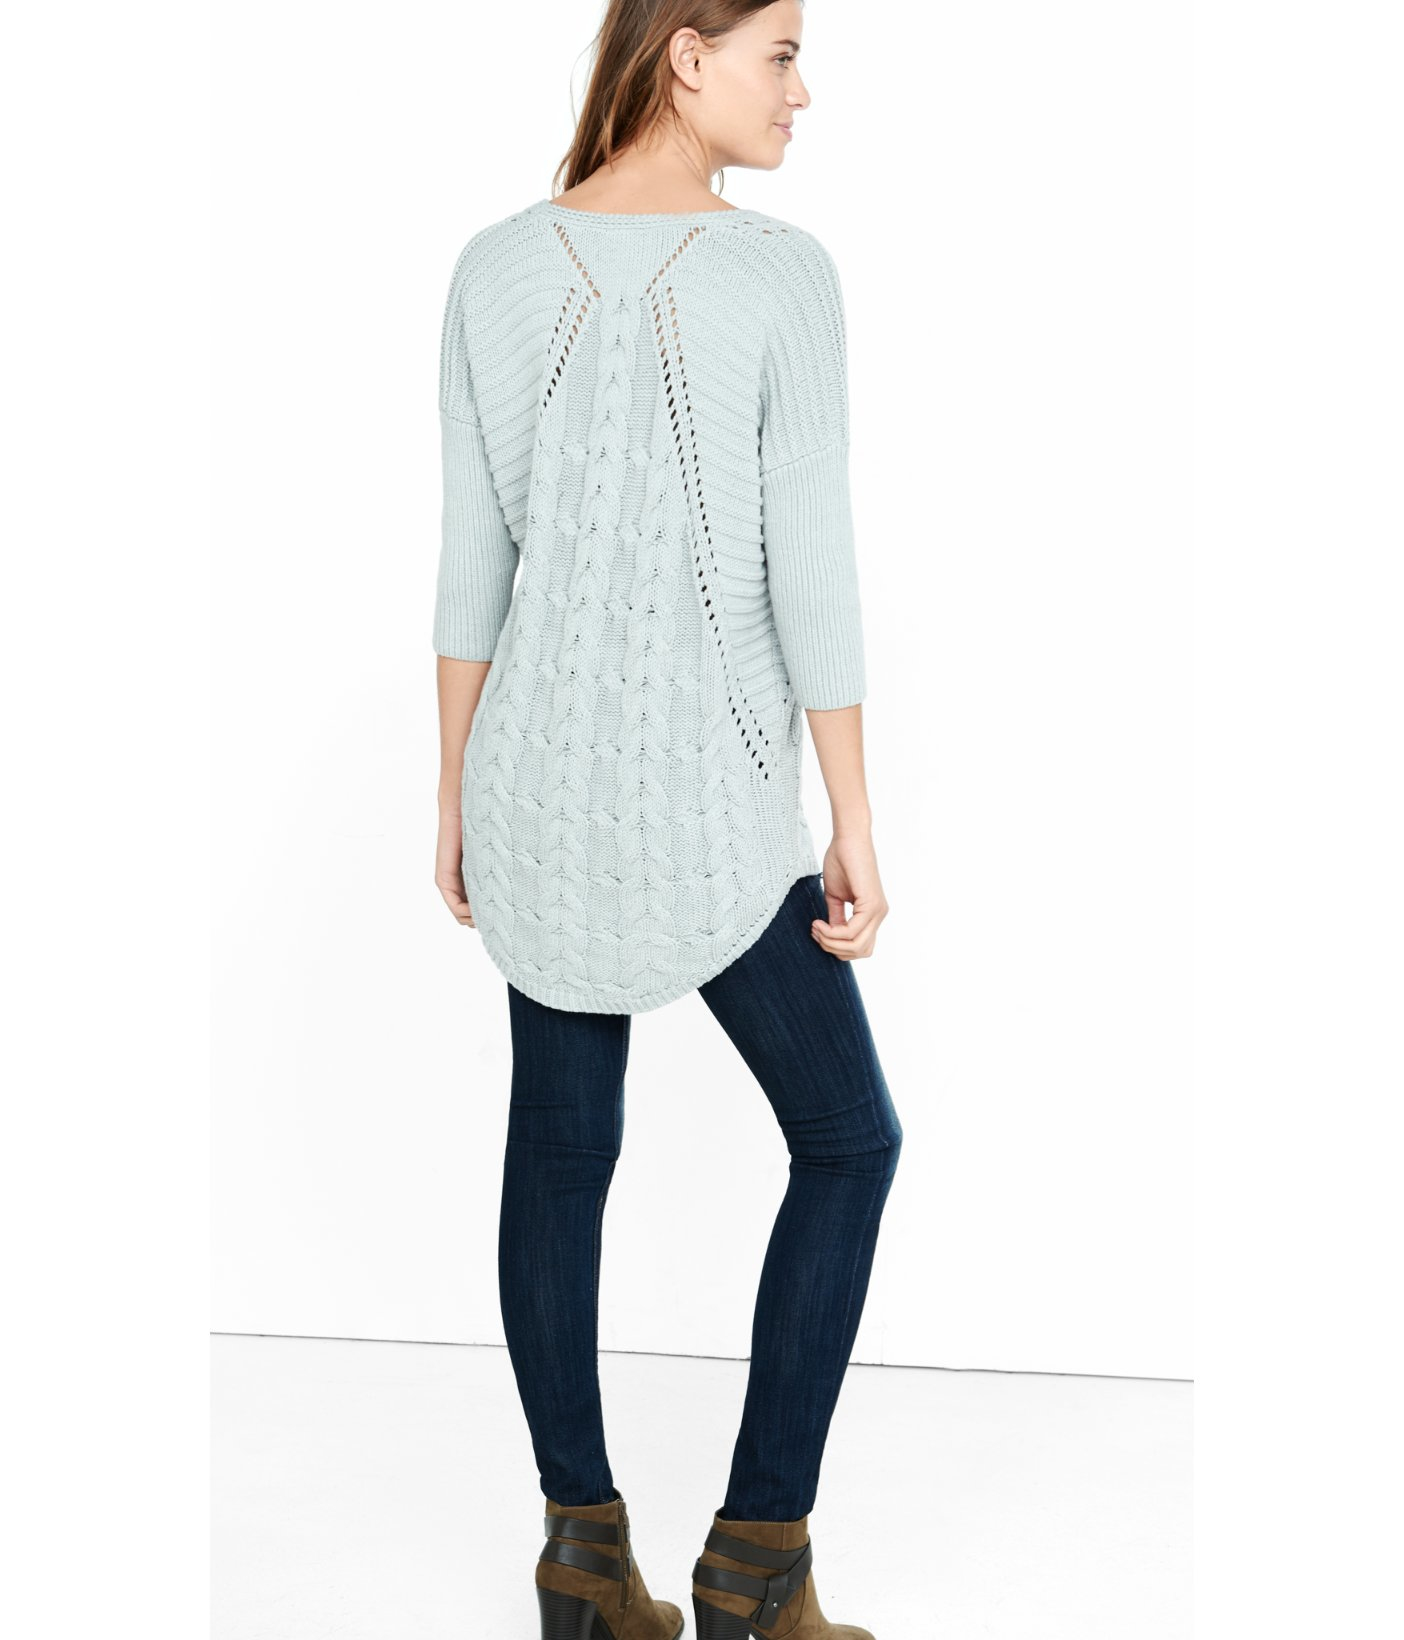 Express Cable Knit London Tunic Sweater in White | Lyst